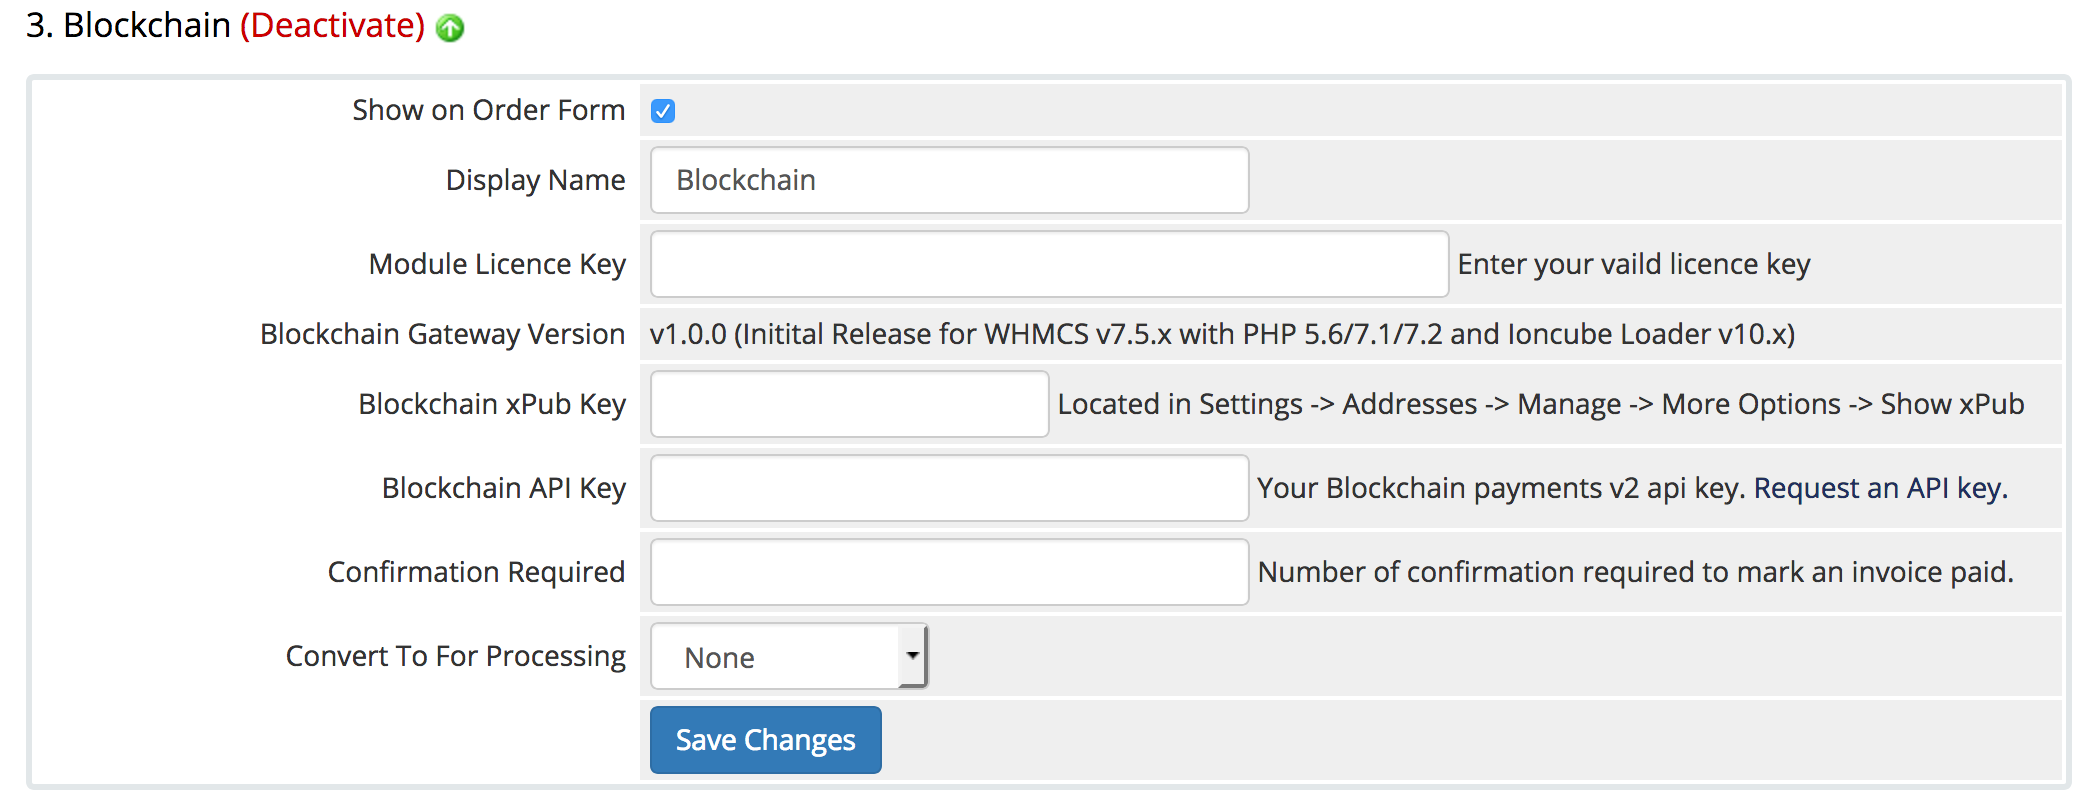 Blockchain Payment Gateway Module for WHMCS